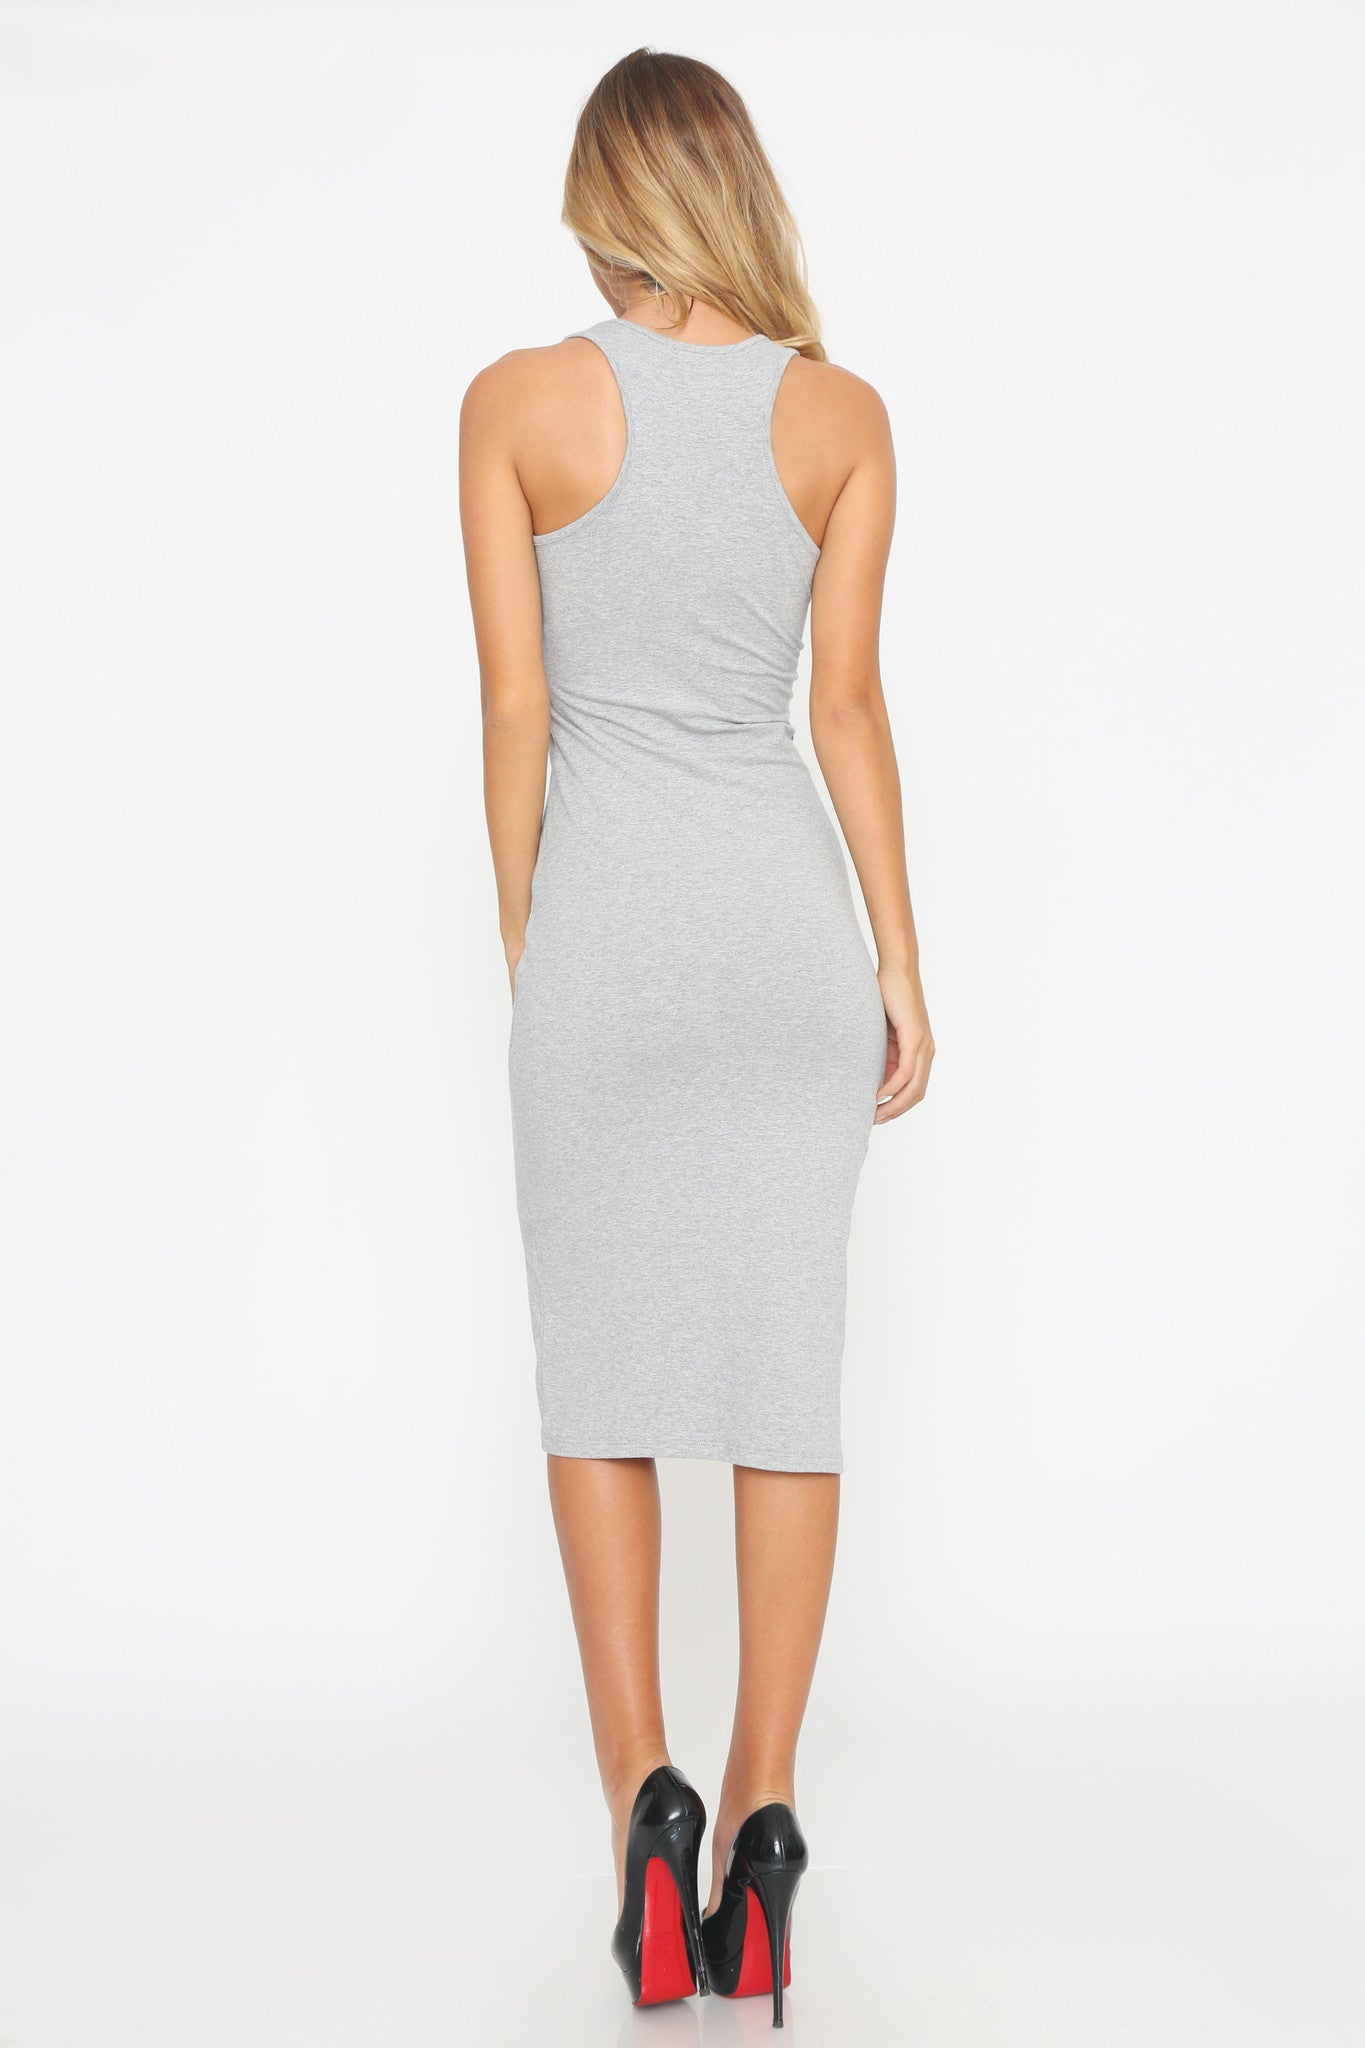 SHERIDAN DRESS - Glam Envy - 3